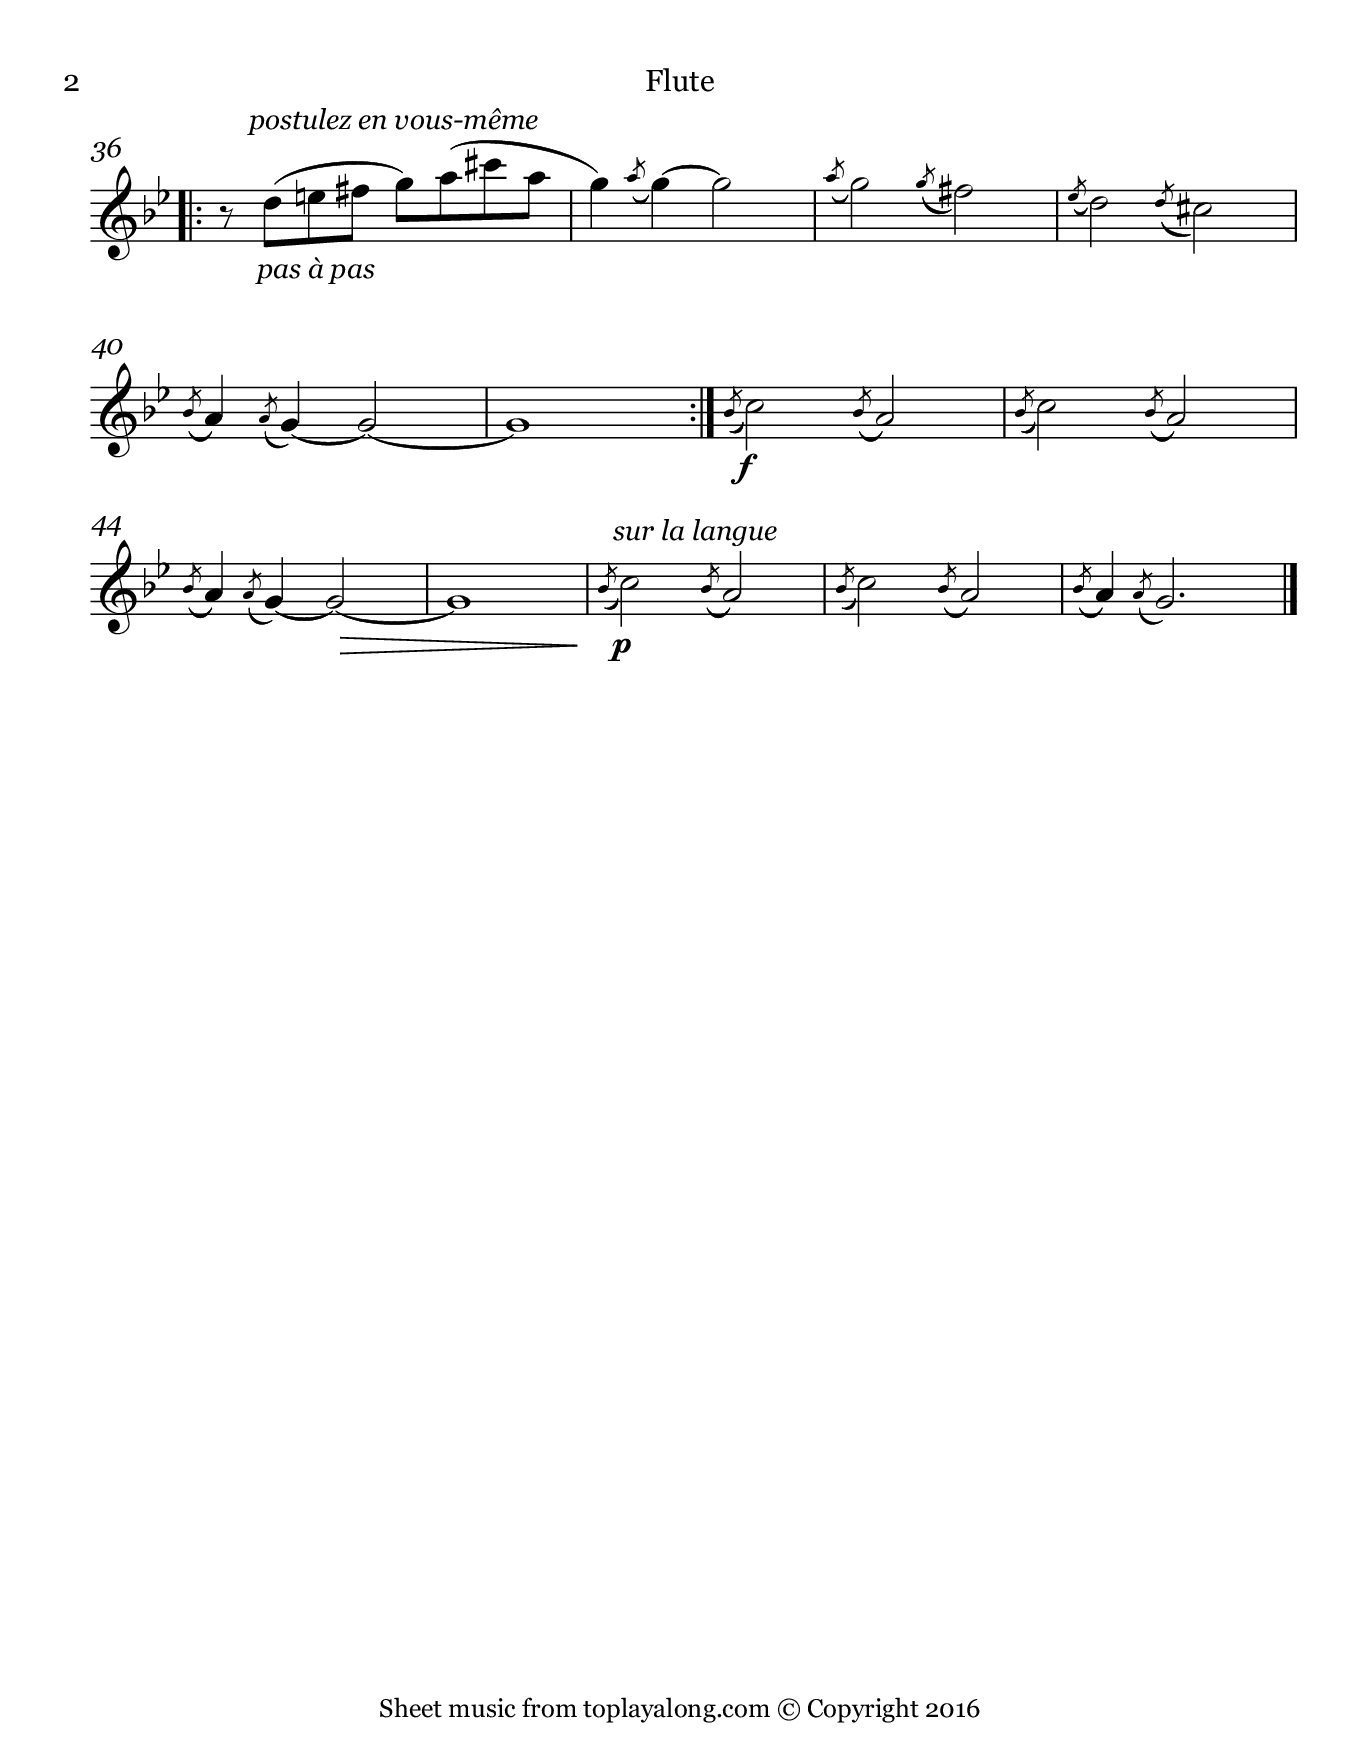 Gnossienne No. 1 by Satie. Sheet music for Flute, page 2.